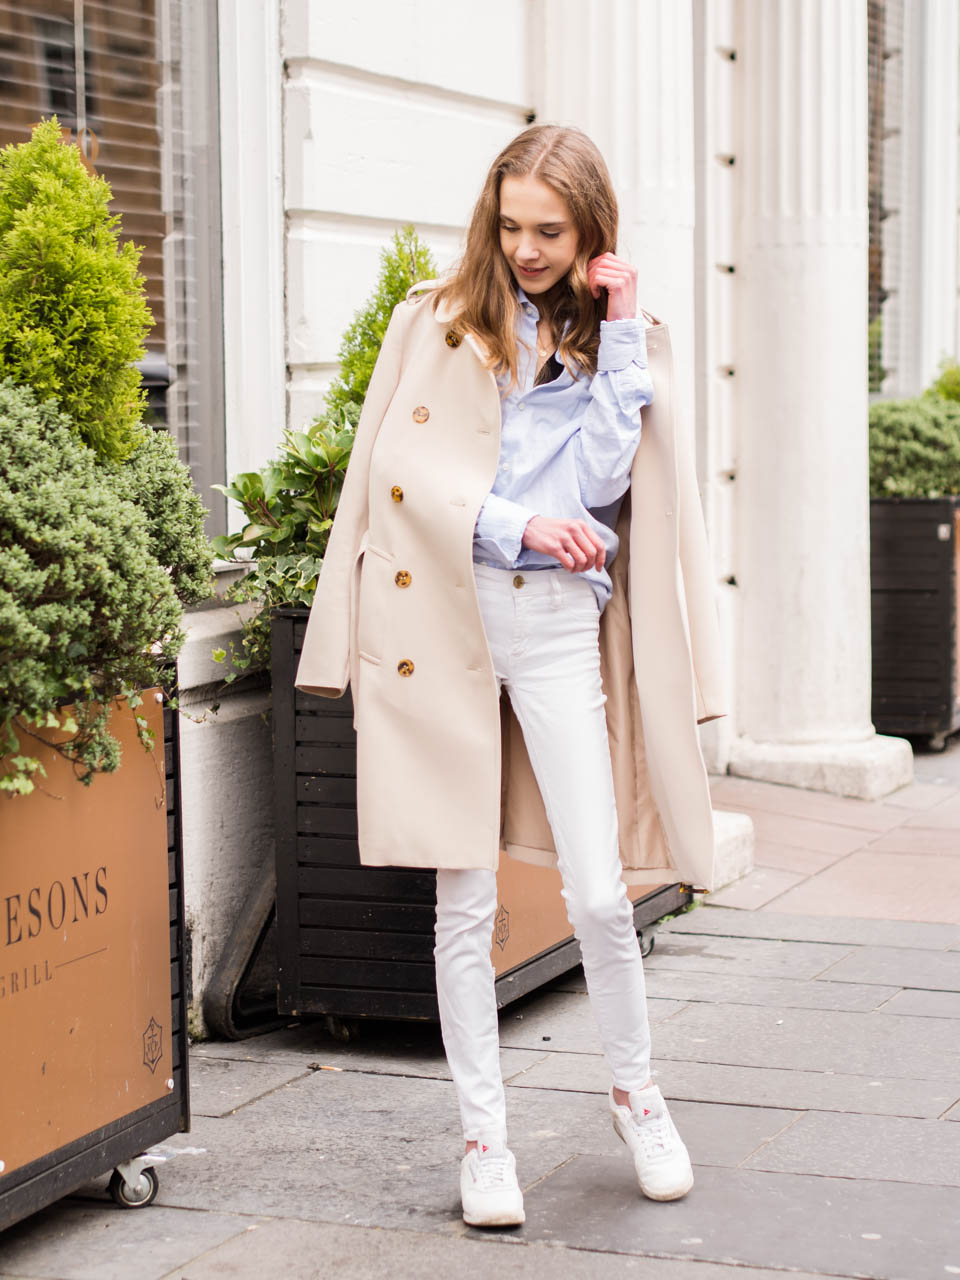 trench-coat-outfit-inspiration-scandinavian-fashion-blog-spring-2019